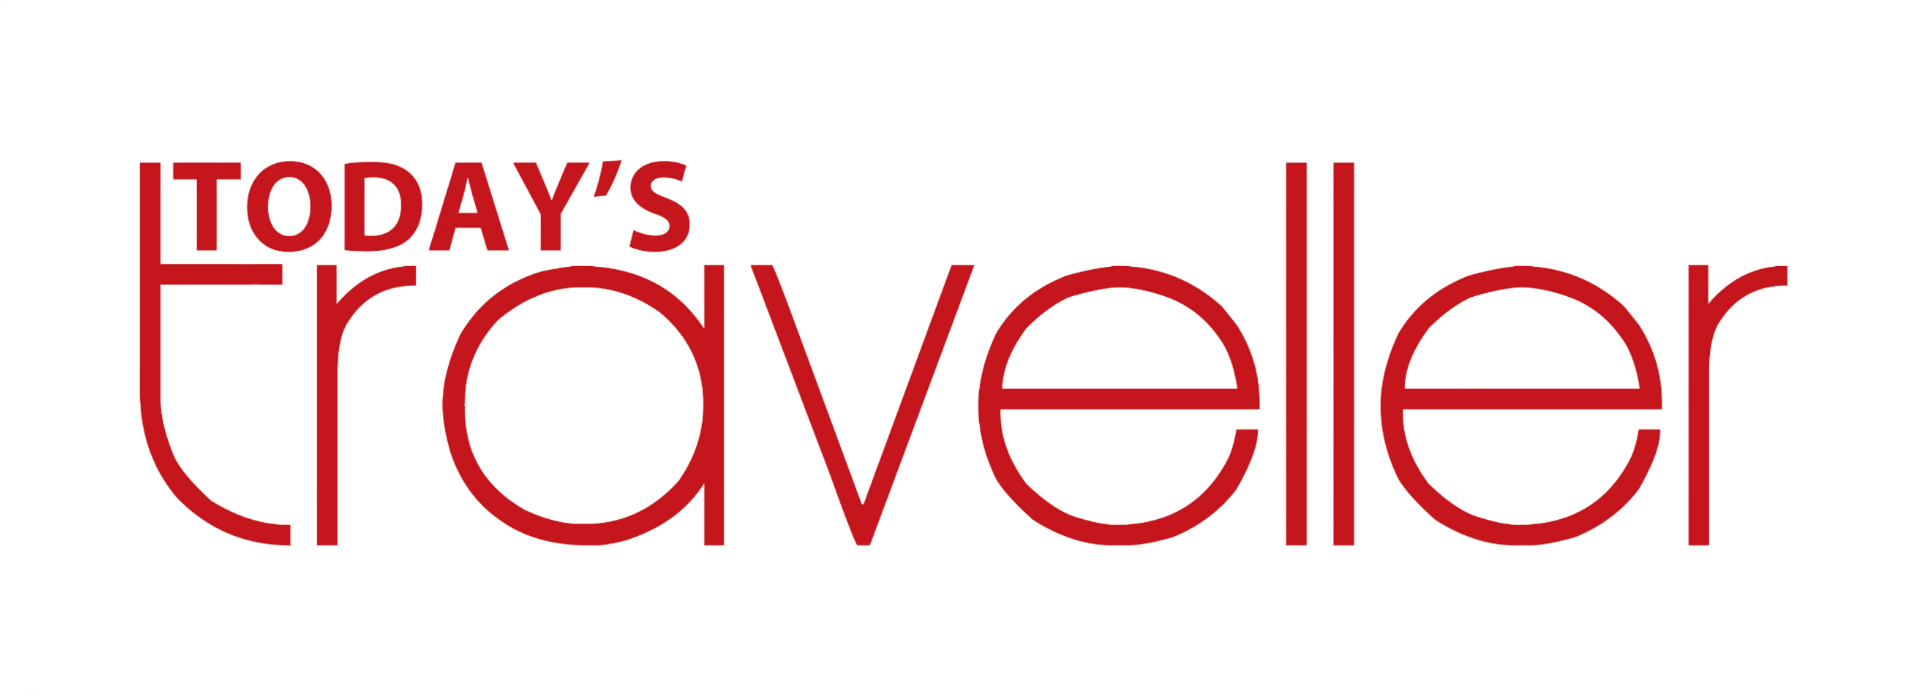 Today's Traveller – Travel & Tourism News, Hotel & Holidays